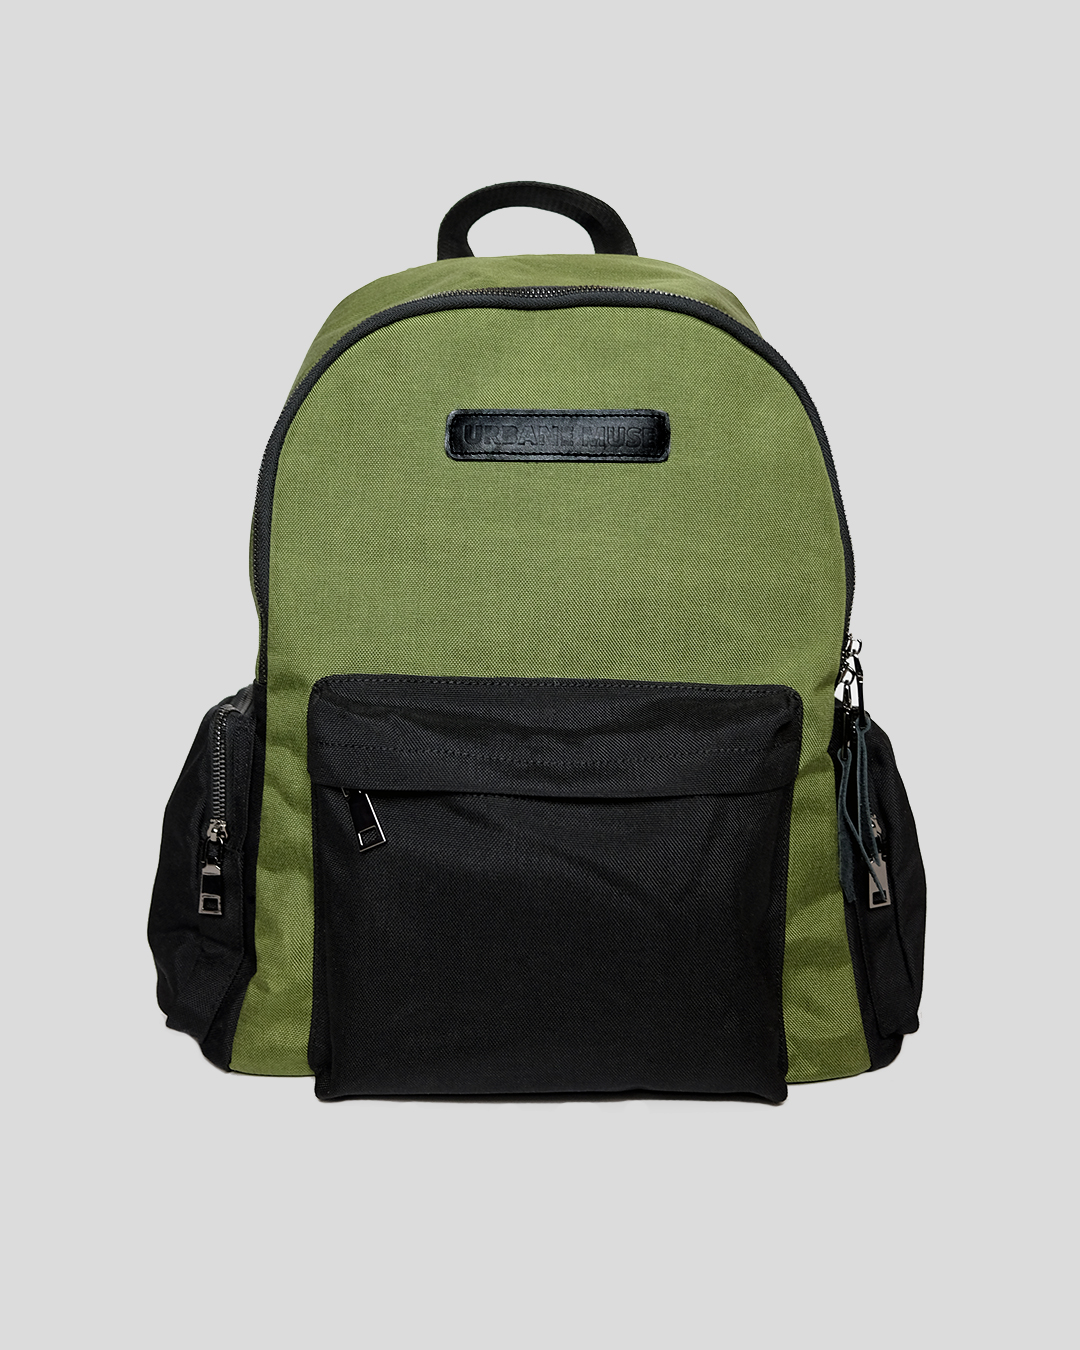 photo-1-GREEN-CORDURA-BACKPACK-URBANE-MUSE-CHRIS-SMITH